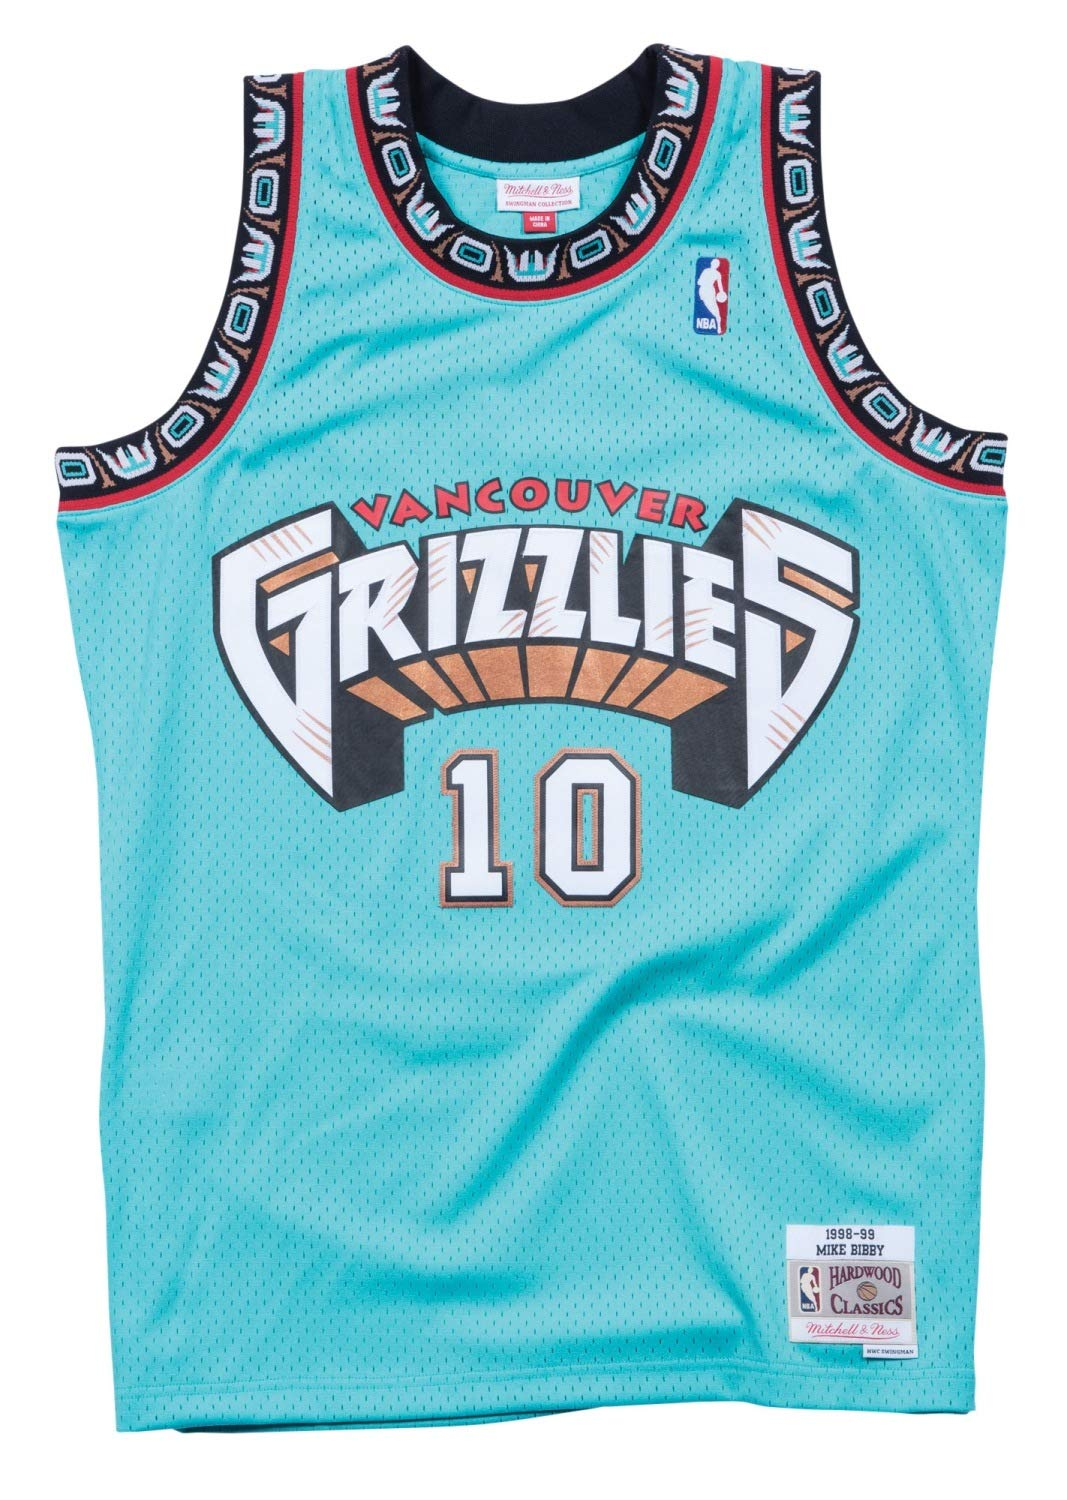 huge selection of 588ea e2d48 Mitchell & Ness Mike Bibby Vancouver Grizzlies NBA Throwback Jersey Teal